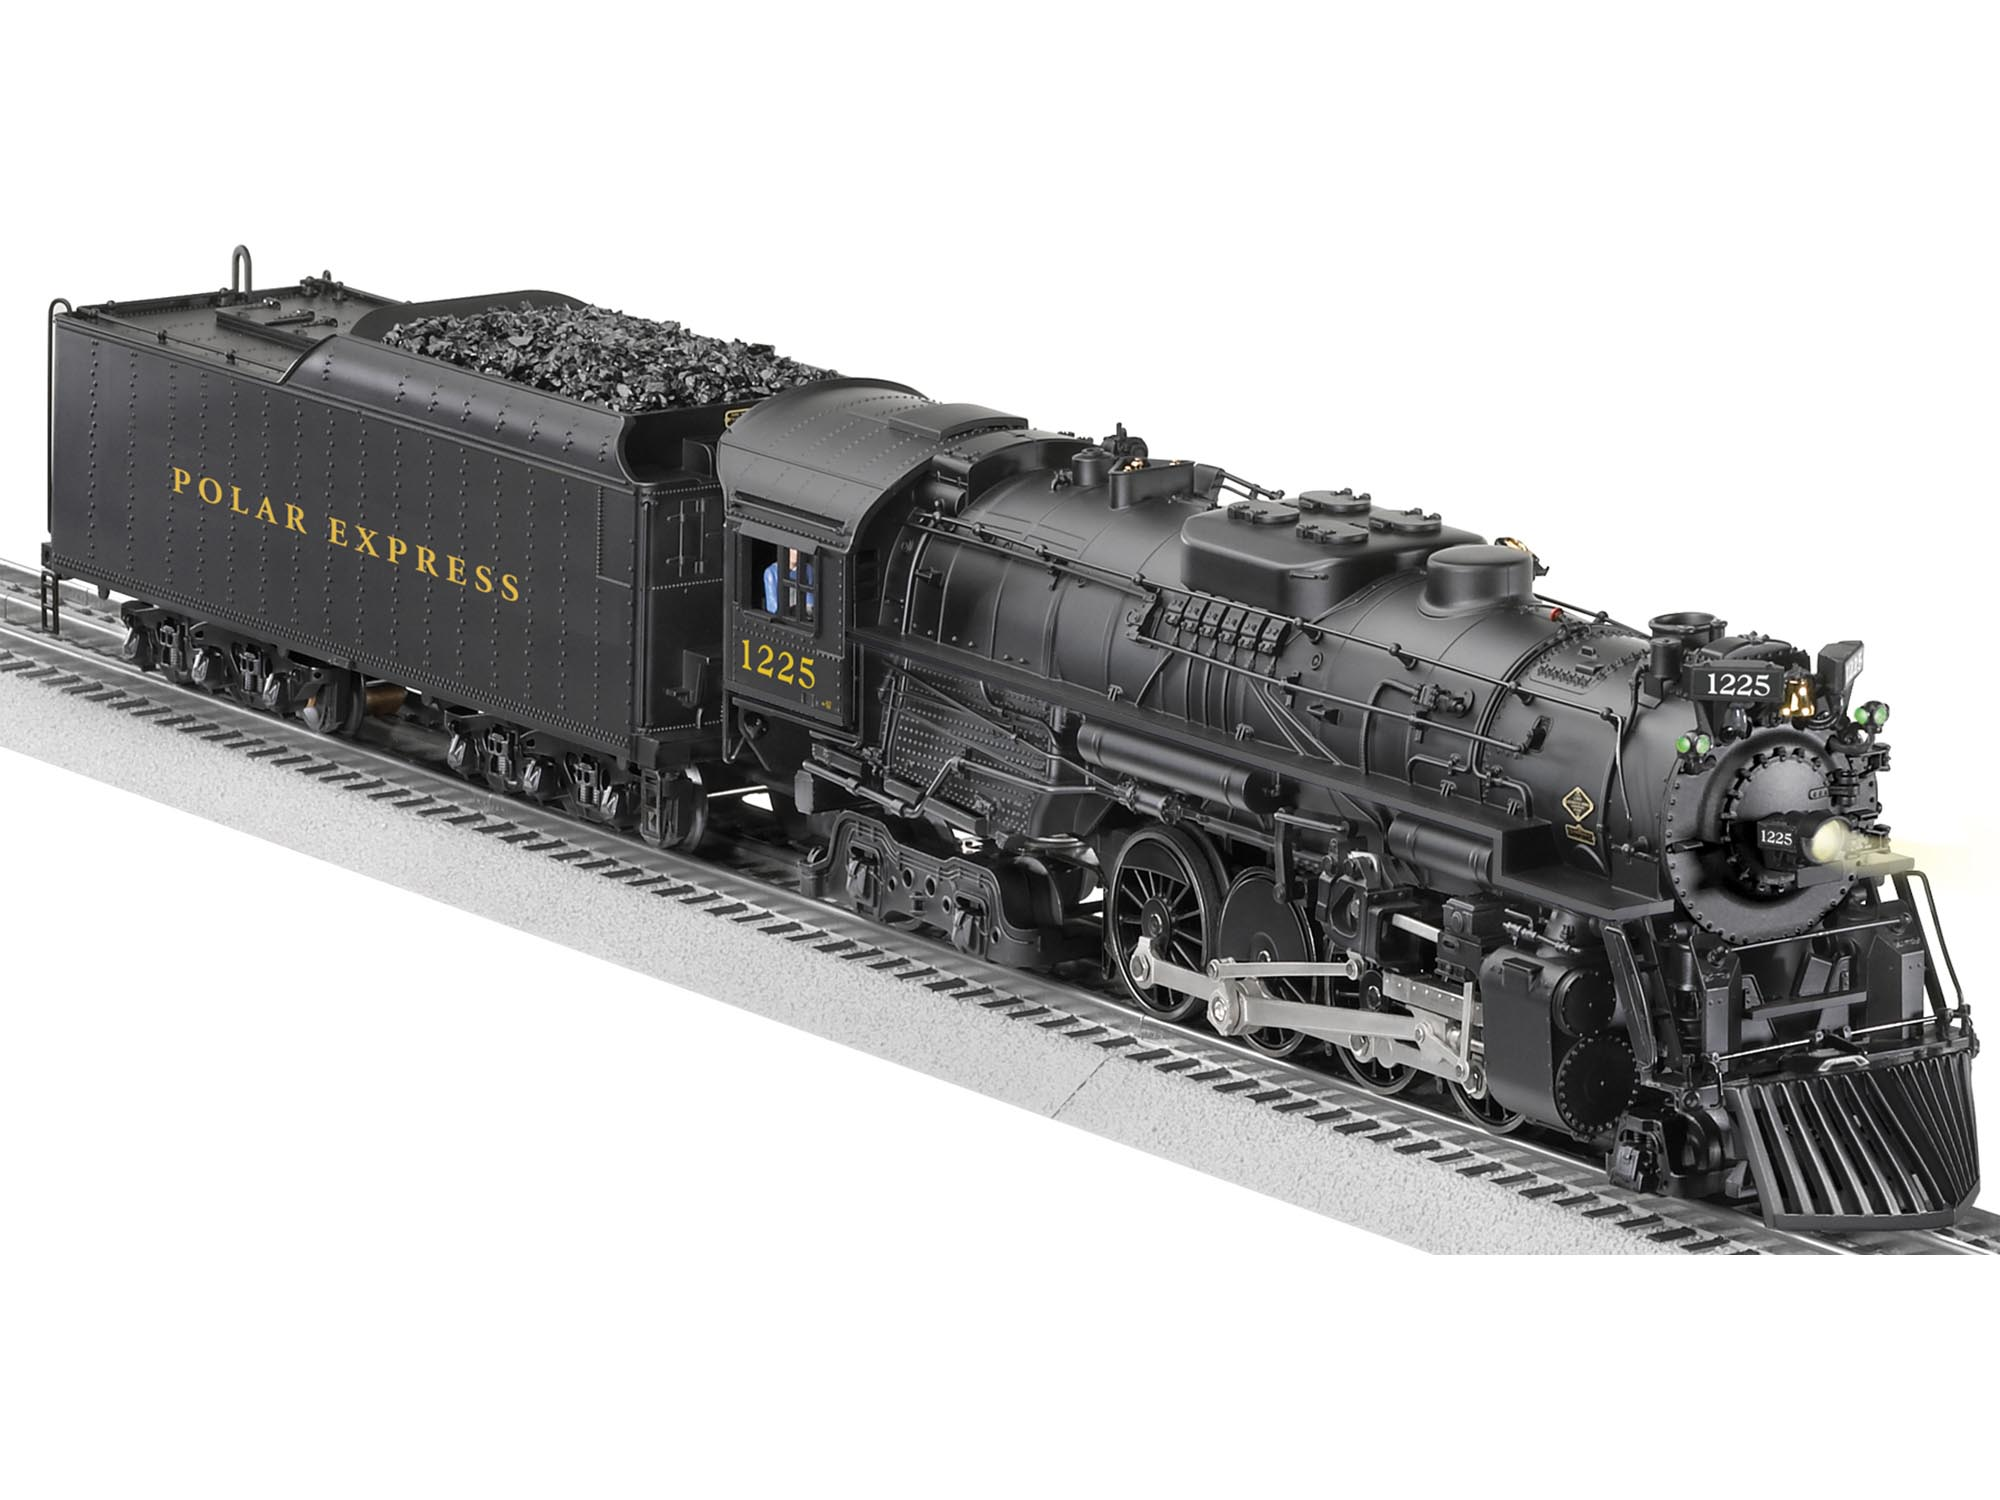 The Polar Express 10th Anniversary Scale Berkshire Locomotive 1225 – Lionel Legacy Wiring